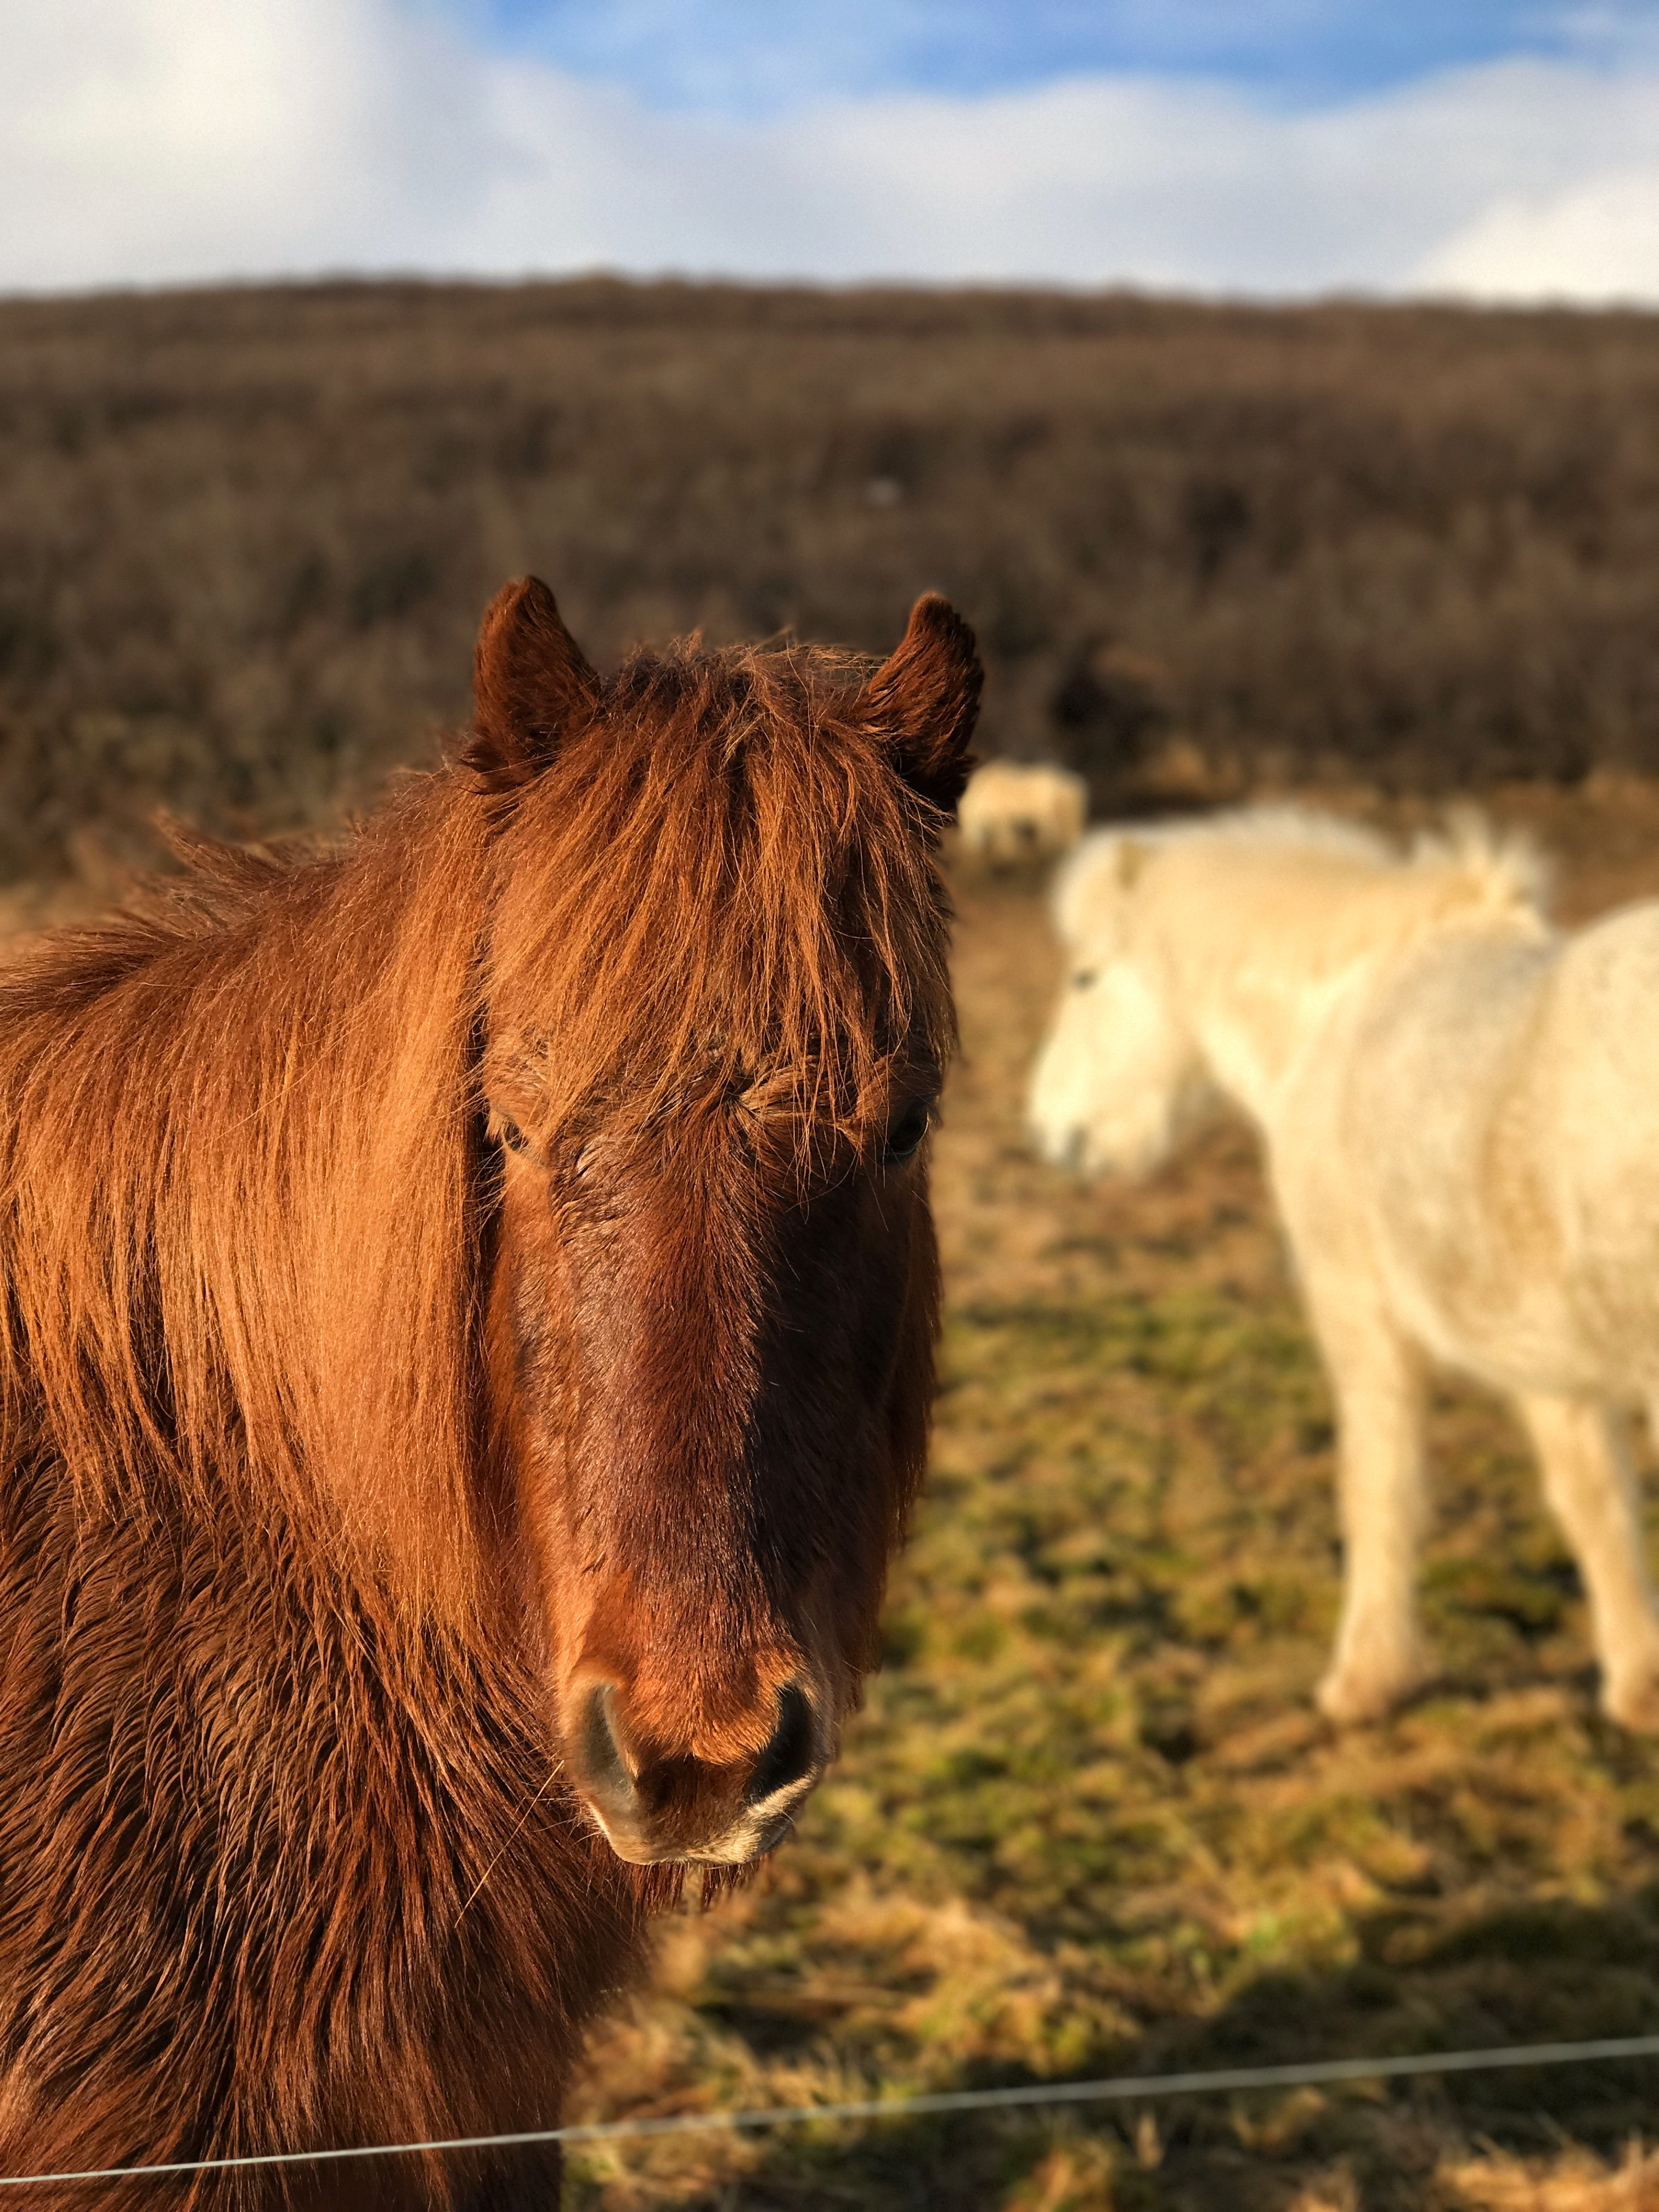 Icelandic Horses (iPhone 7 Plus)